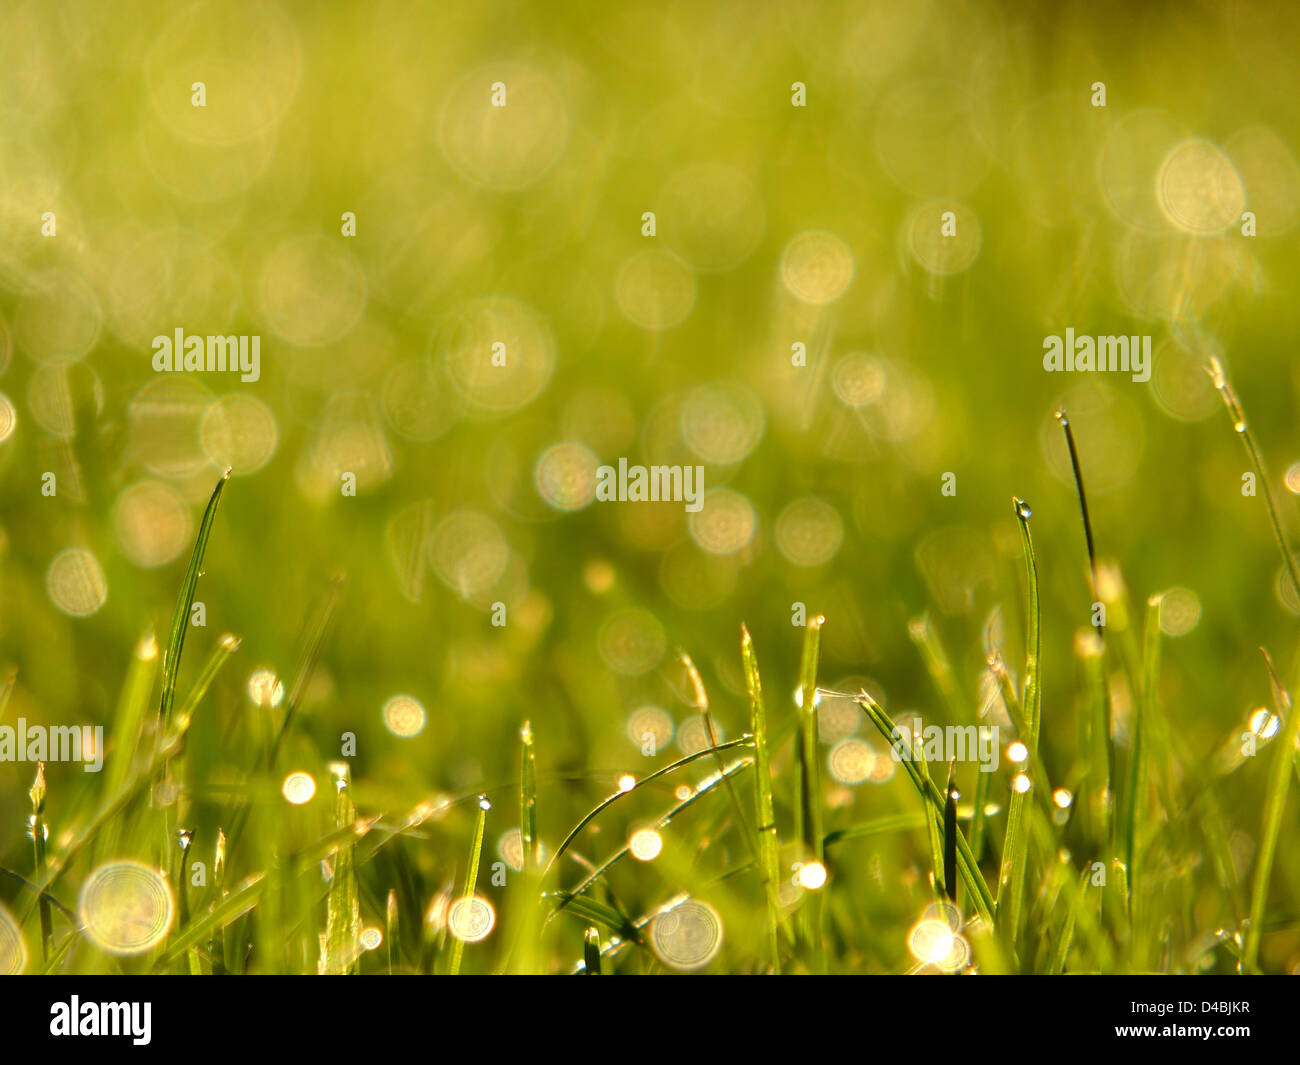 Grass with dew - Stock Image